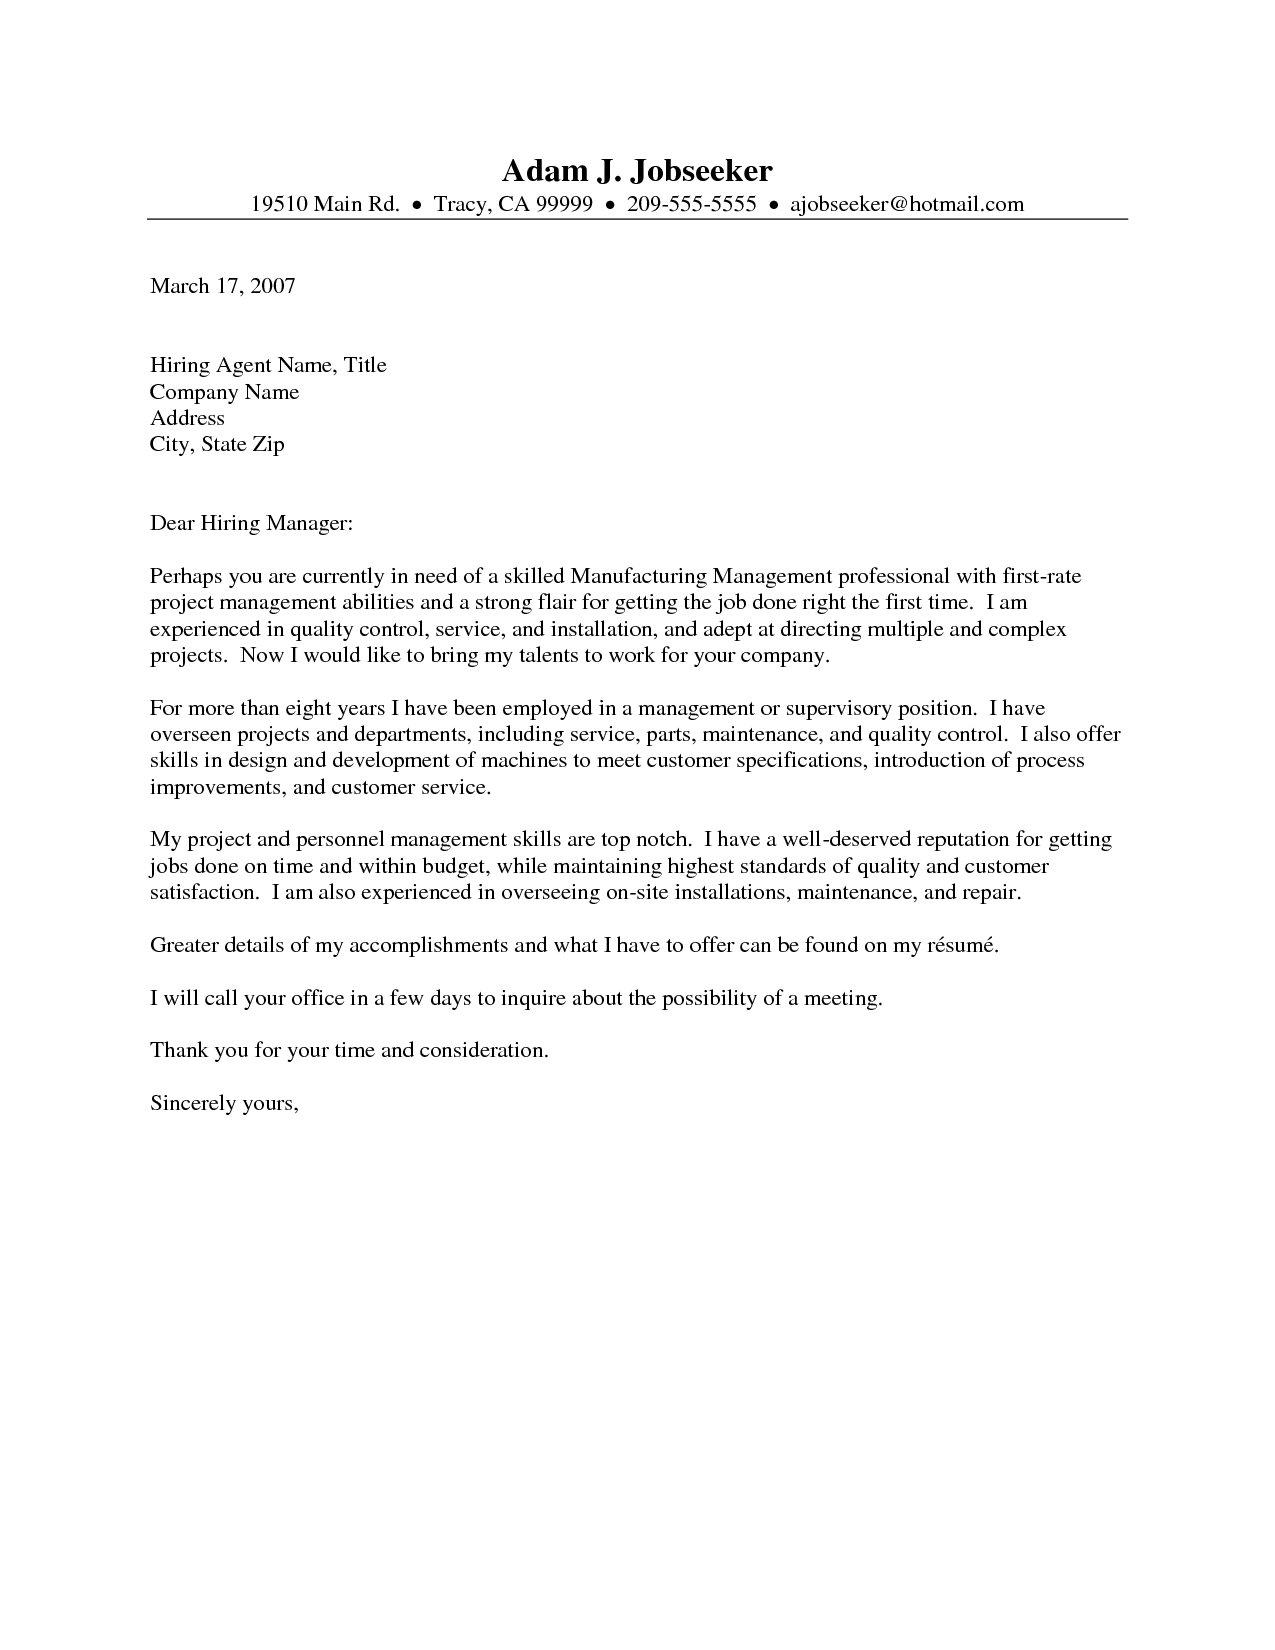 Medical Cover Letter Project Scope Template   Administrative ...